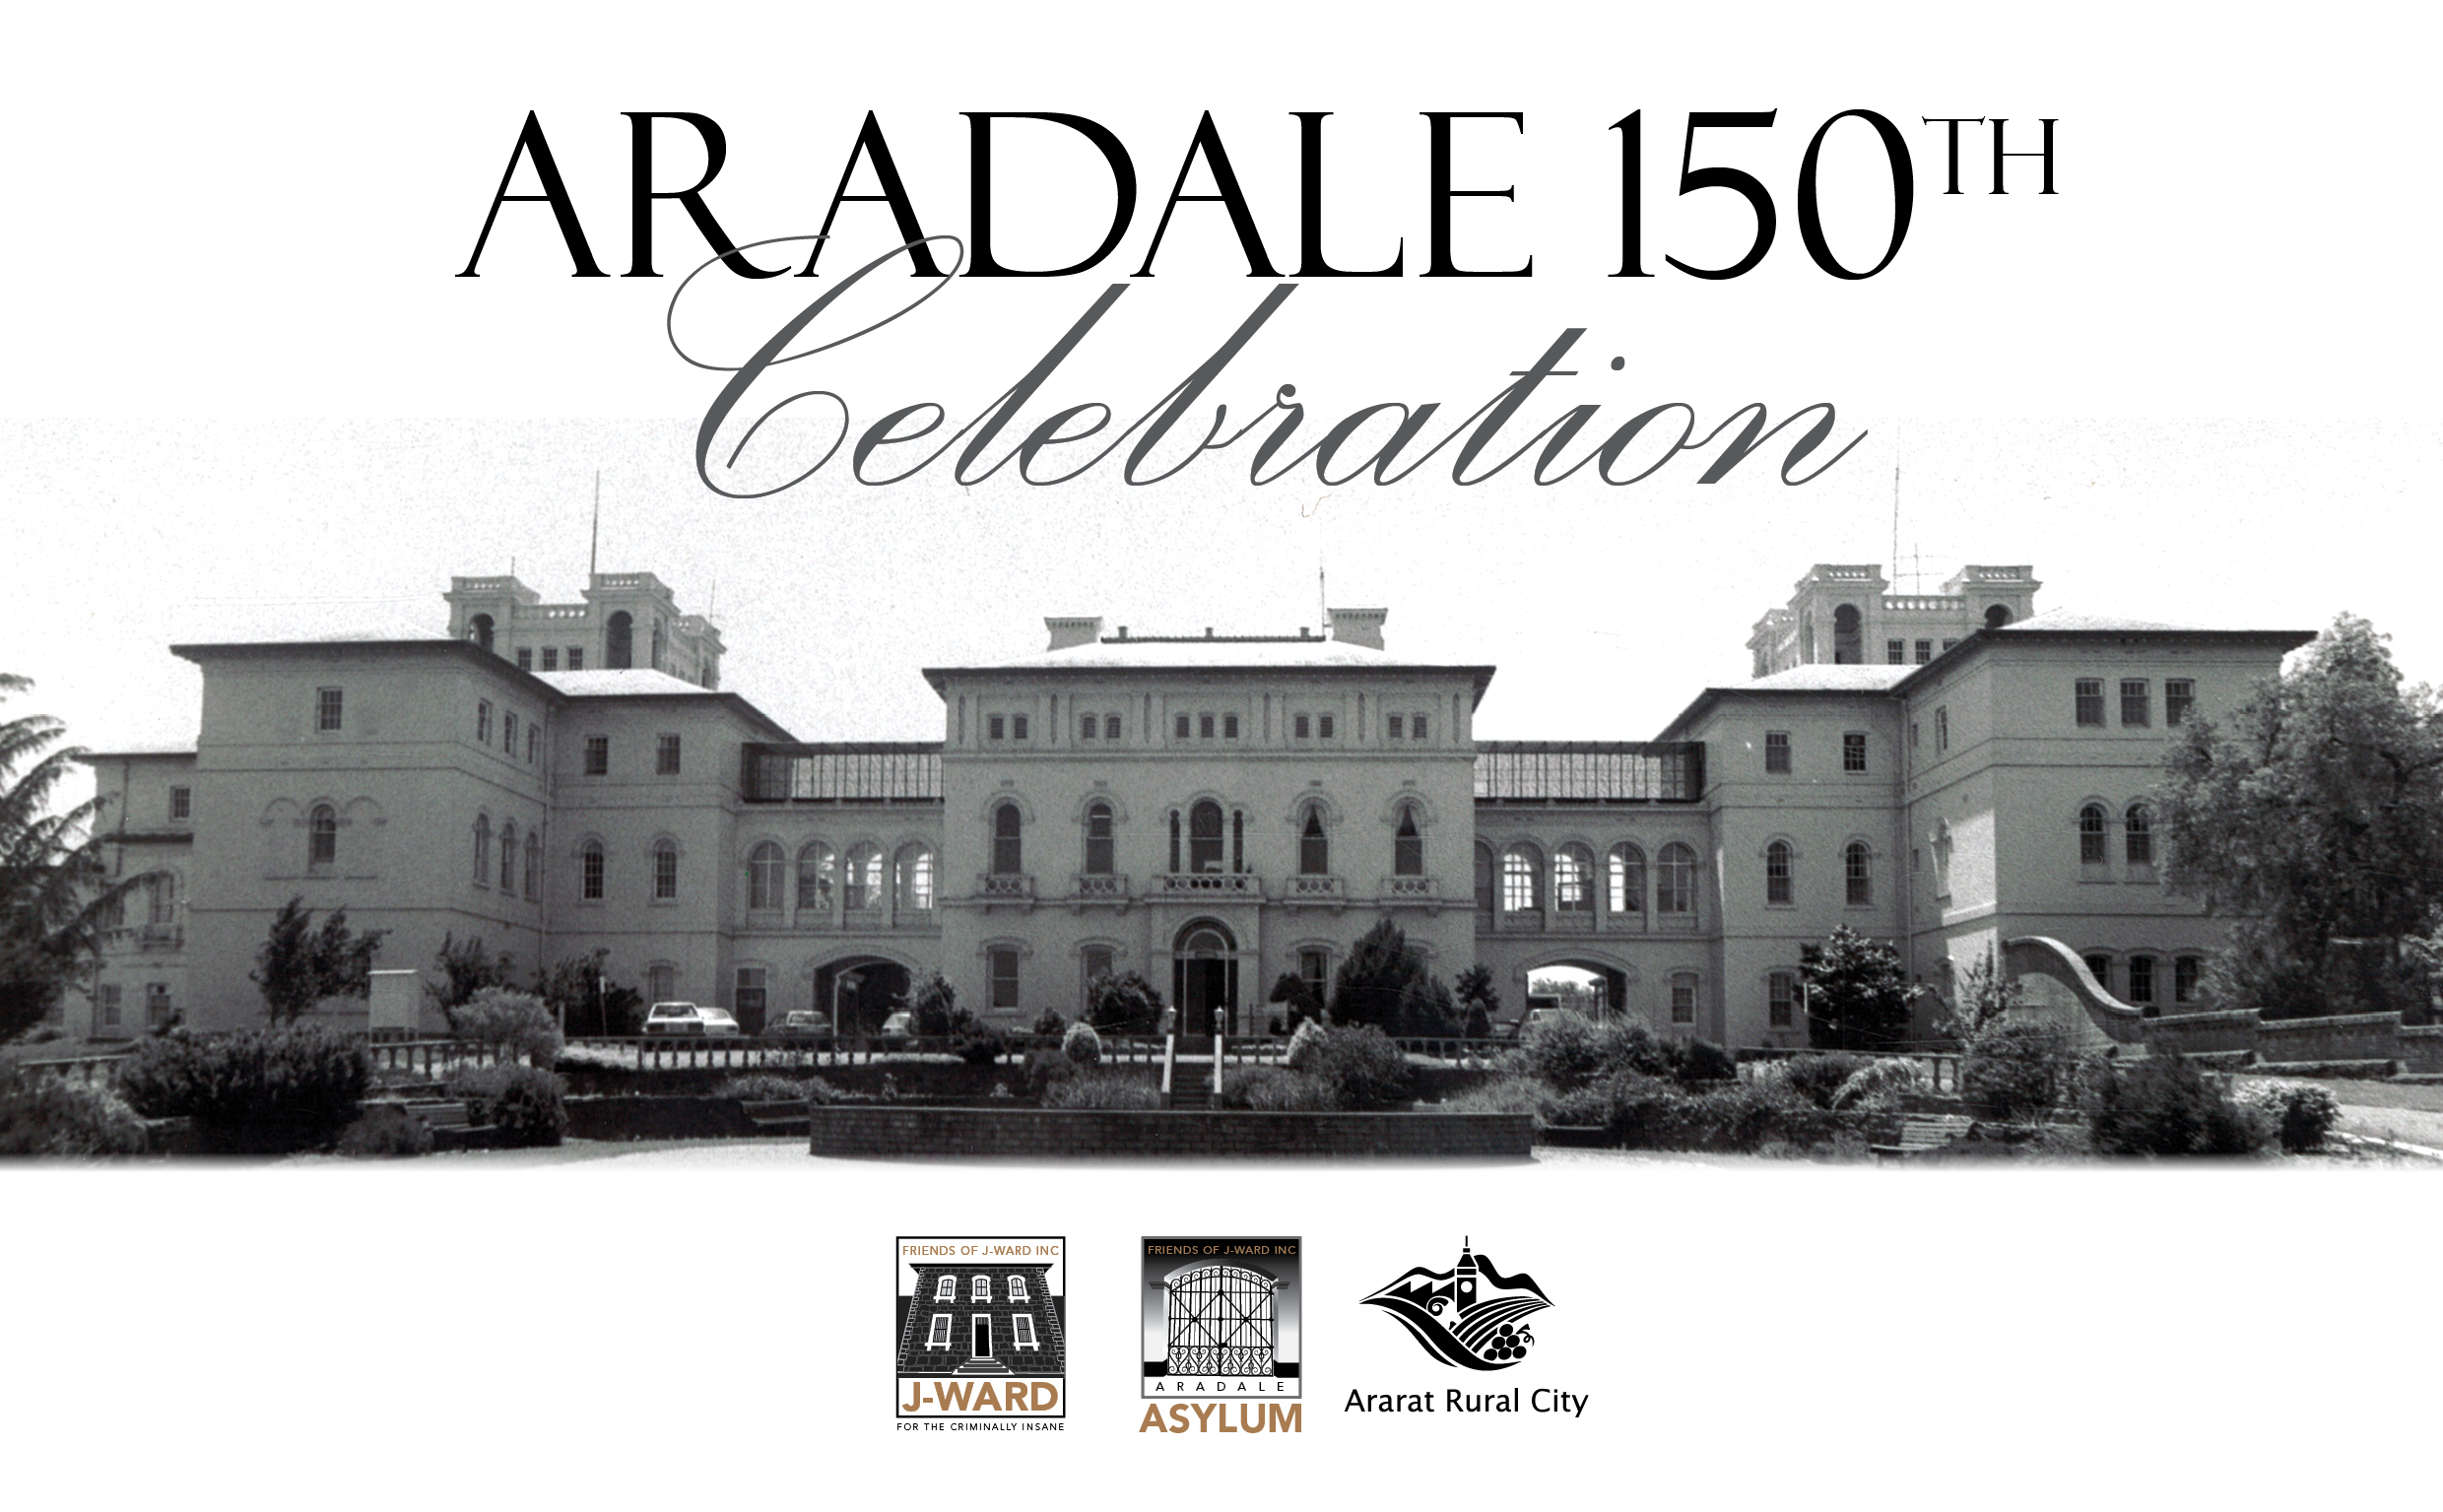 Bookings open for Aradale 150 celebrations